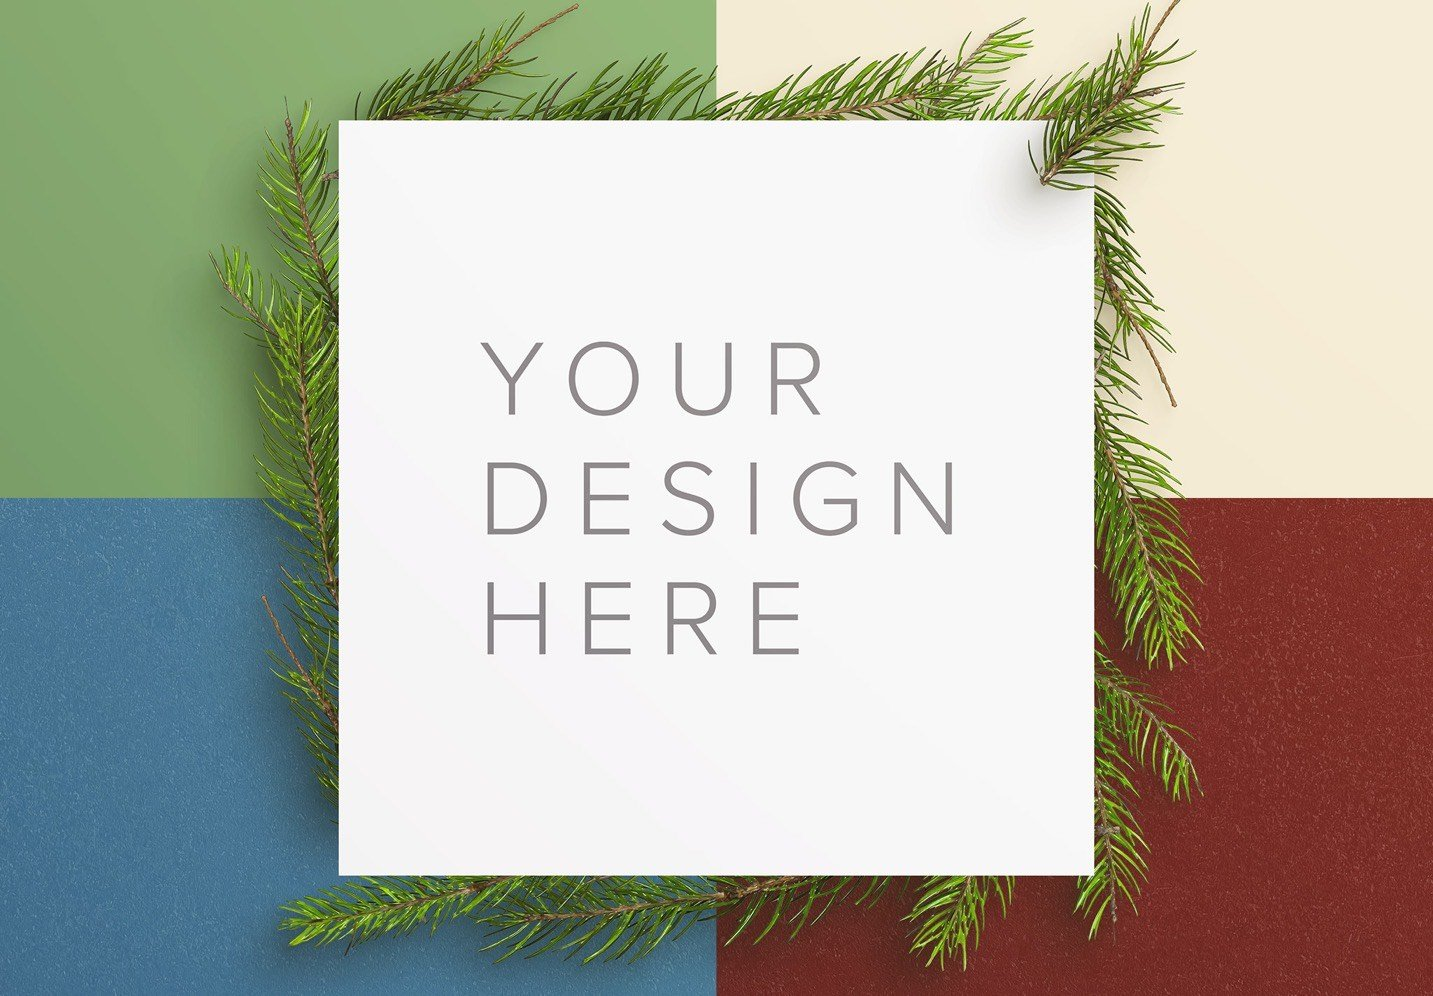 winter frame fir tree mockup image02